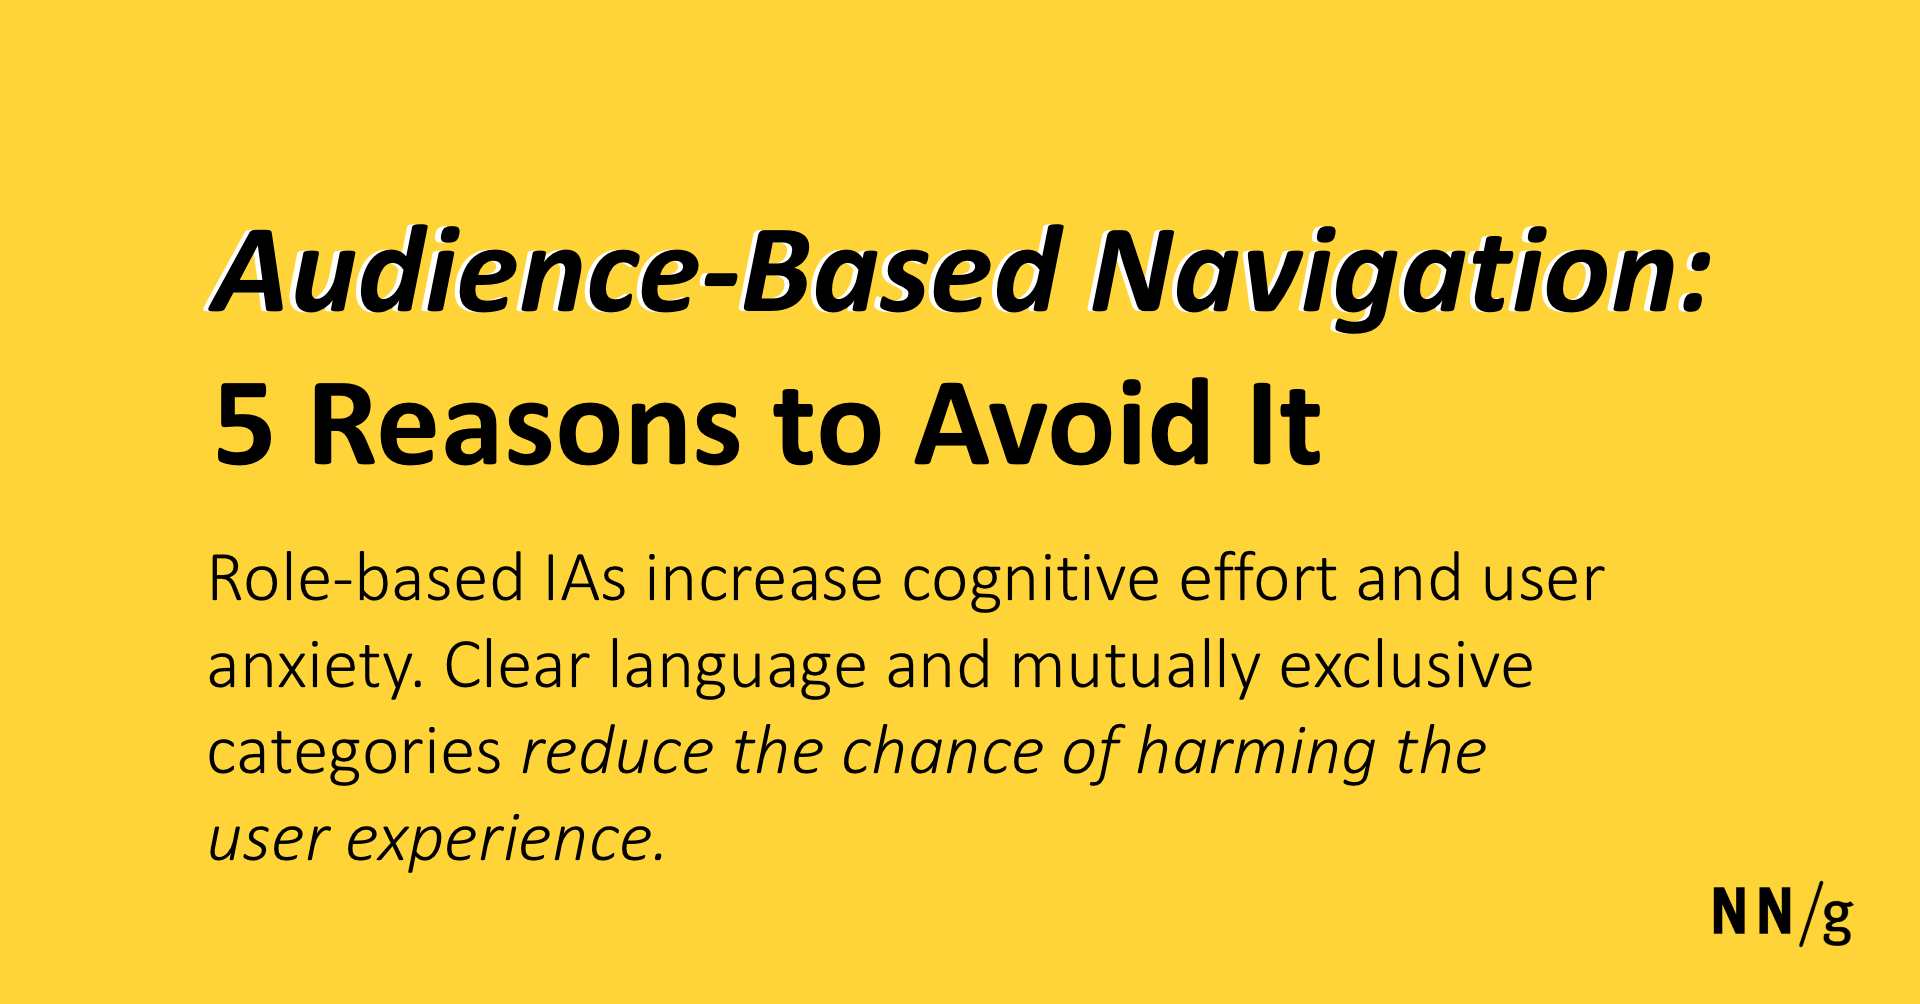 Audience-Based Navigation: 5 Reasons to Avoid It